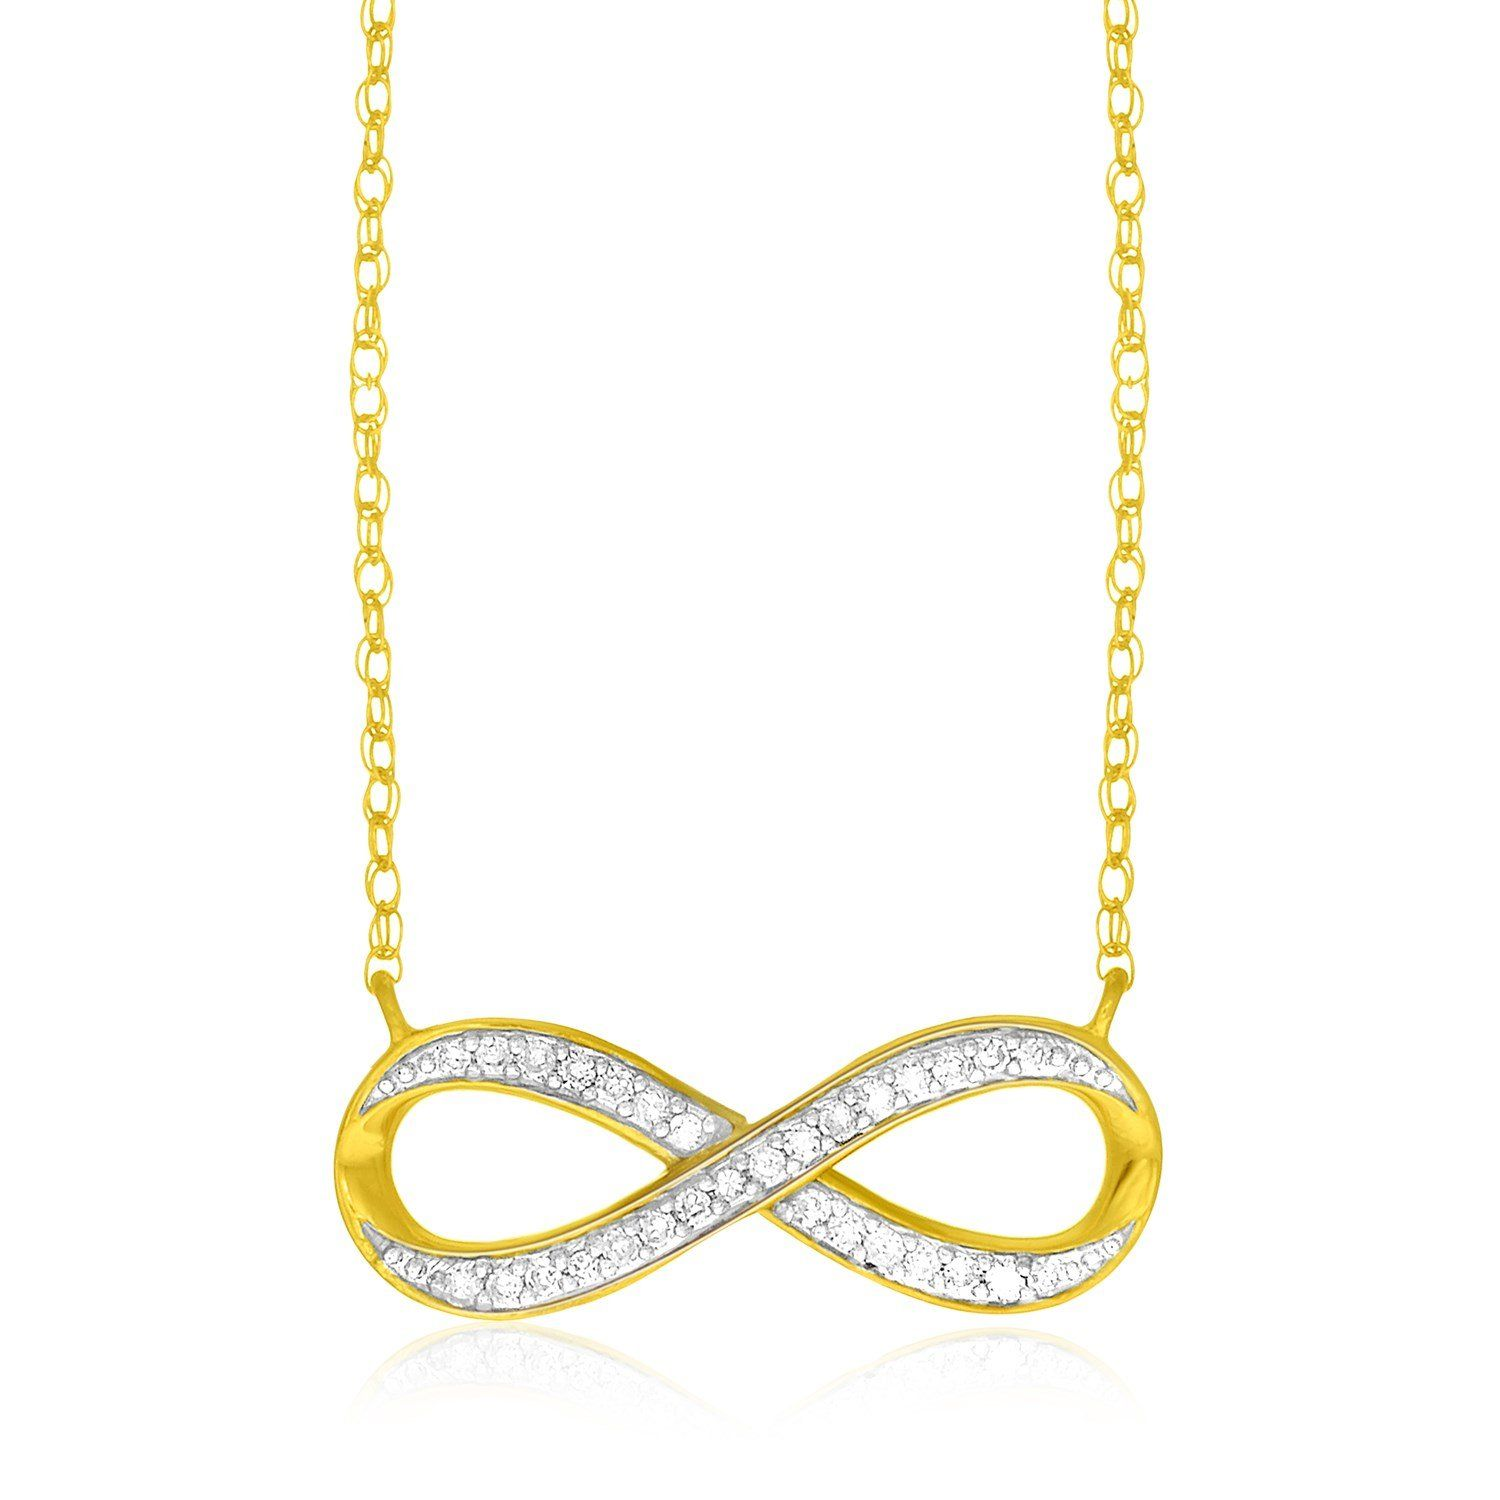 infinity chains gold men necklaces mens for jewelry s cute necklace